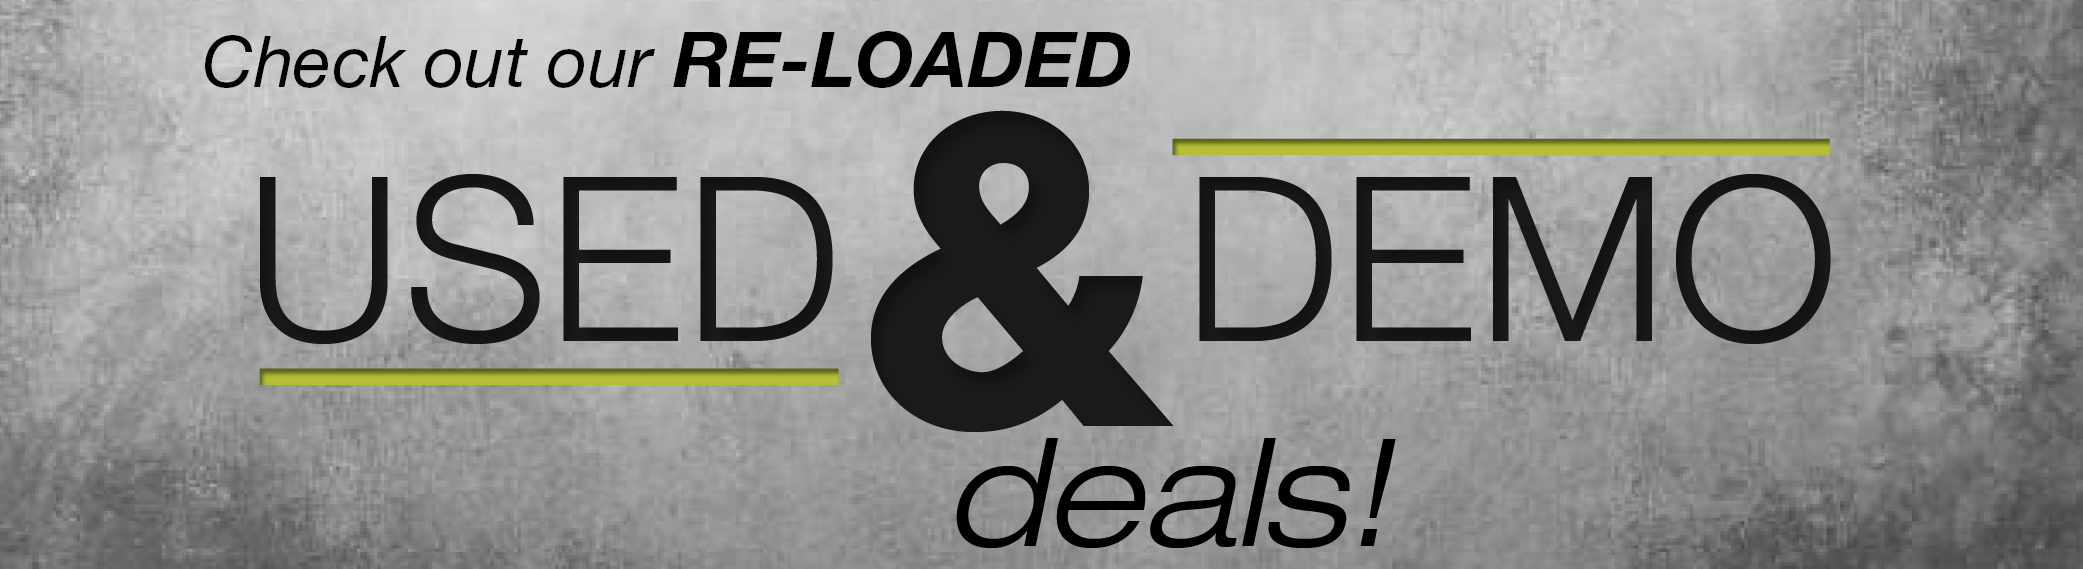 Check out our Used & Demo deals!